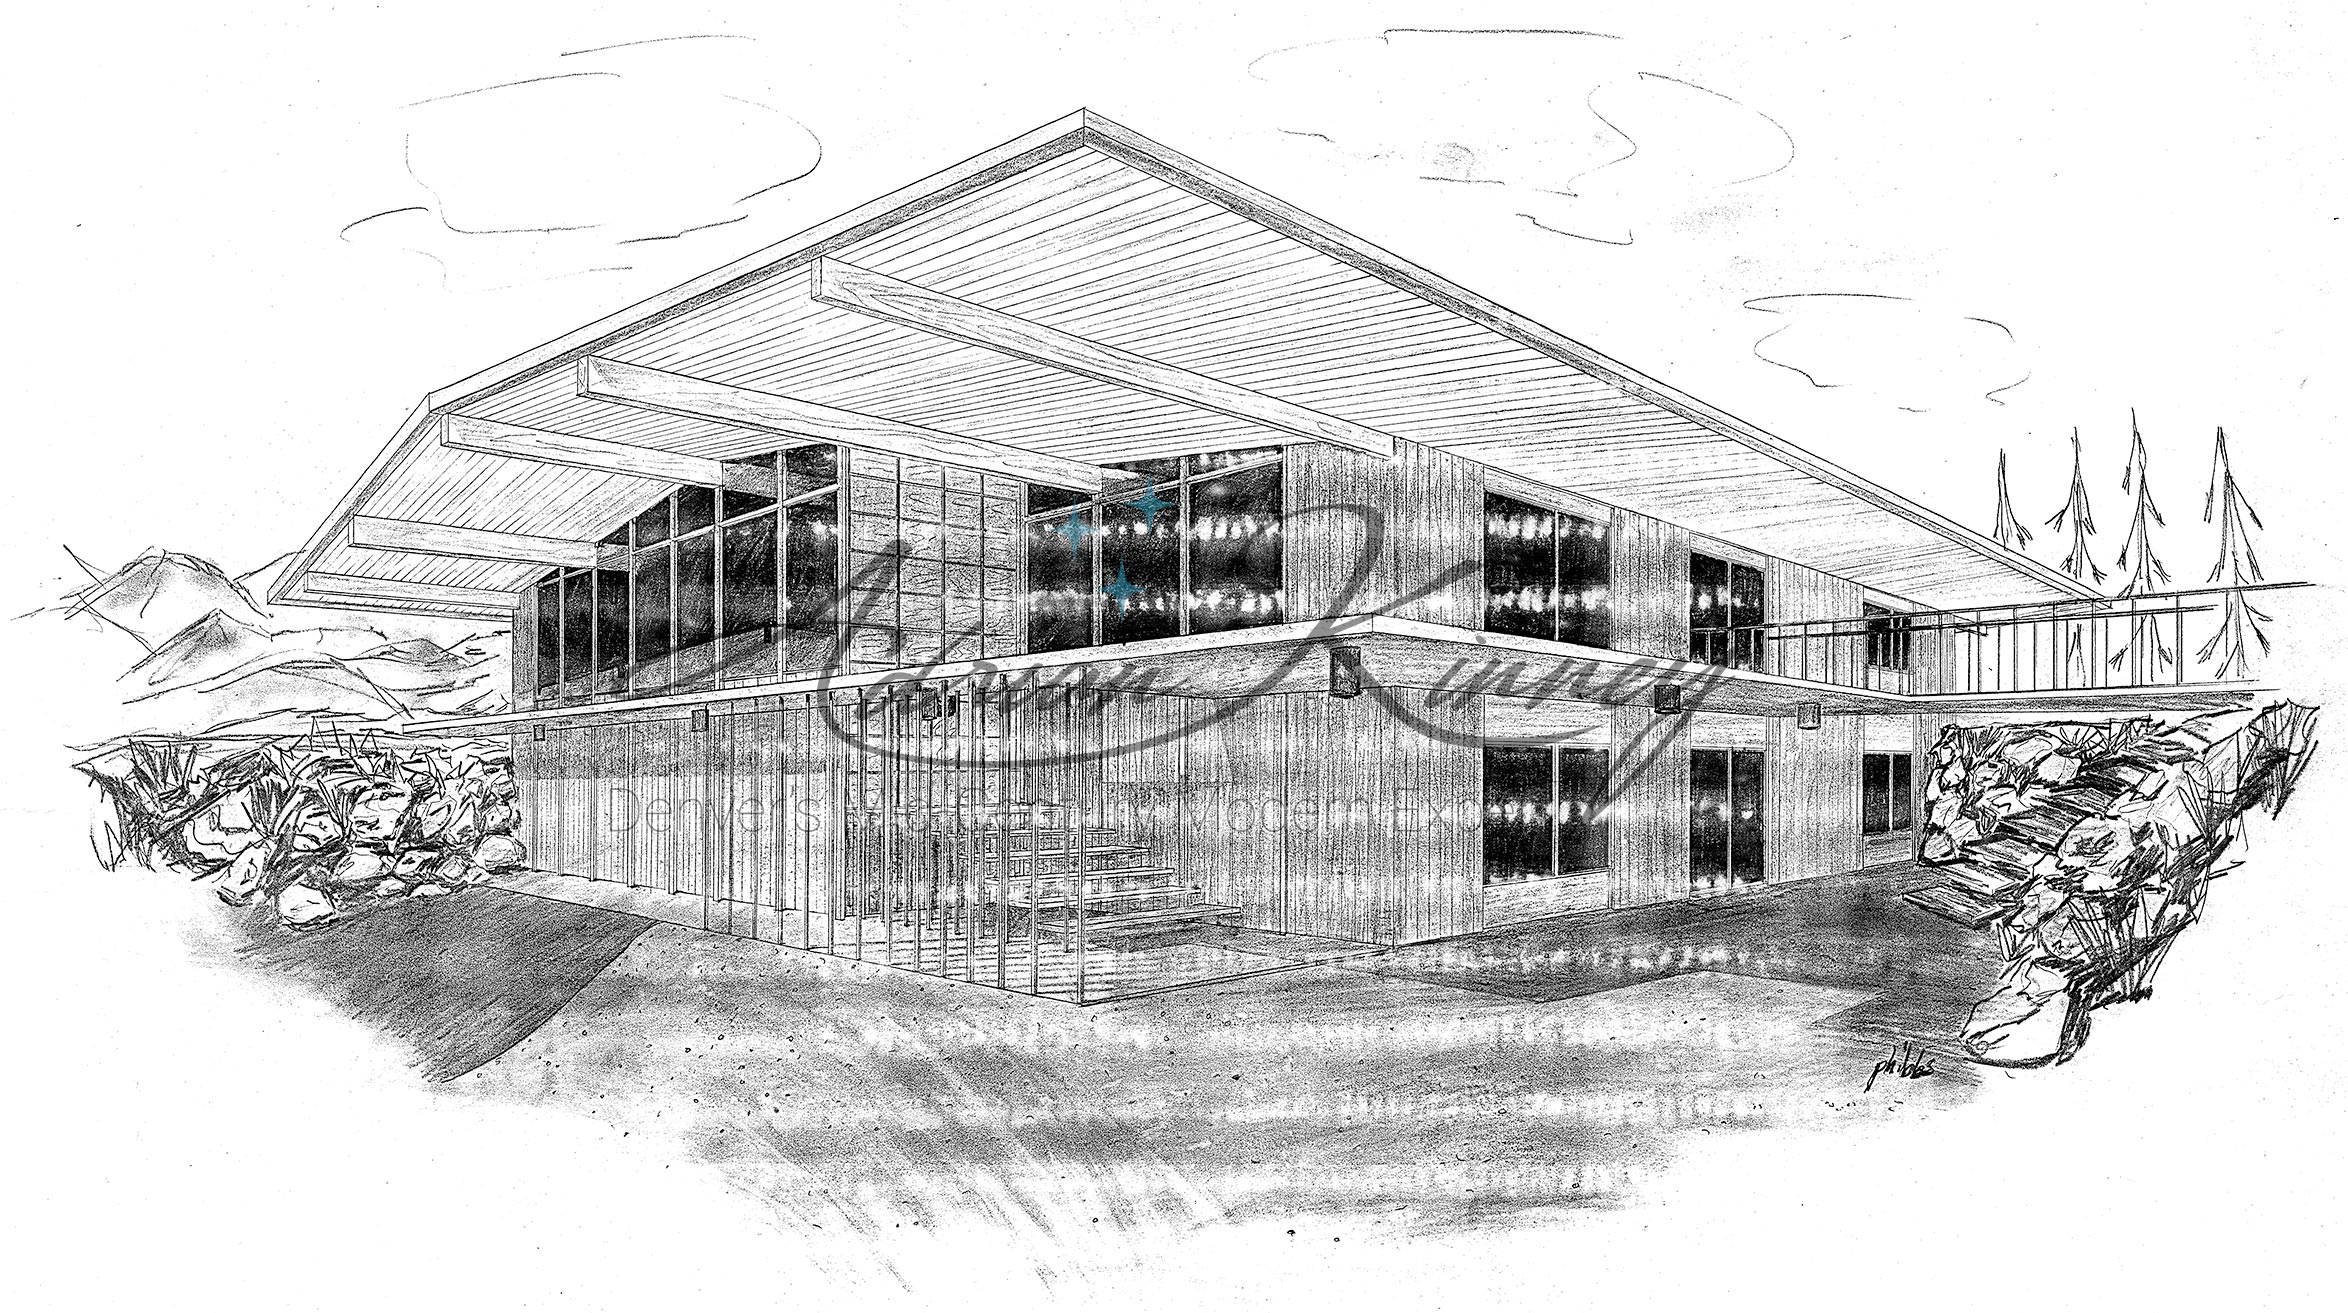 Perspective of the Phibbs House in Arvada, Colorado, looking northeast. Drawing by the house's Designer H. Albert Phibbs as the first sheet of the original drawing set. This scan is from a poor photocopy of the original set, causing the horizontal banding.